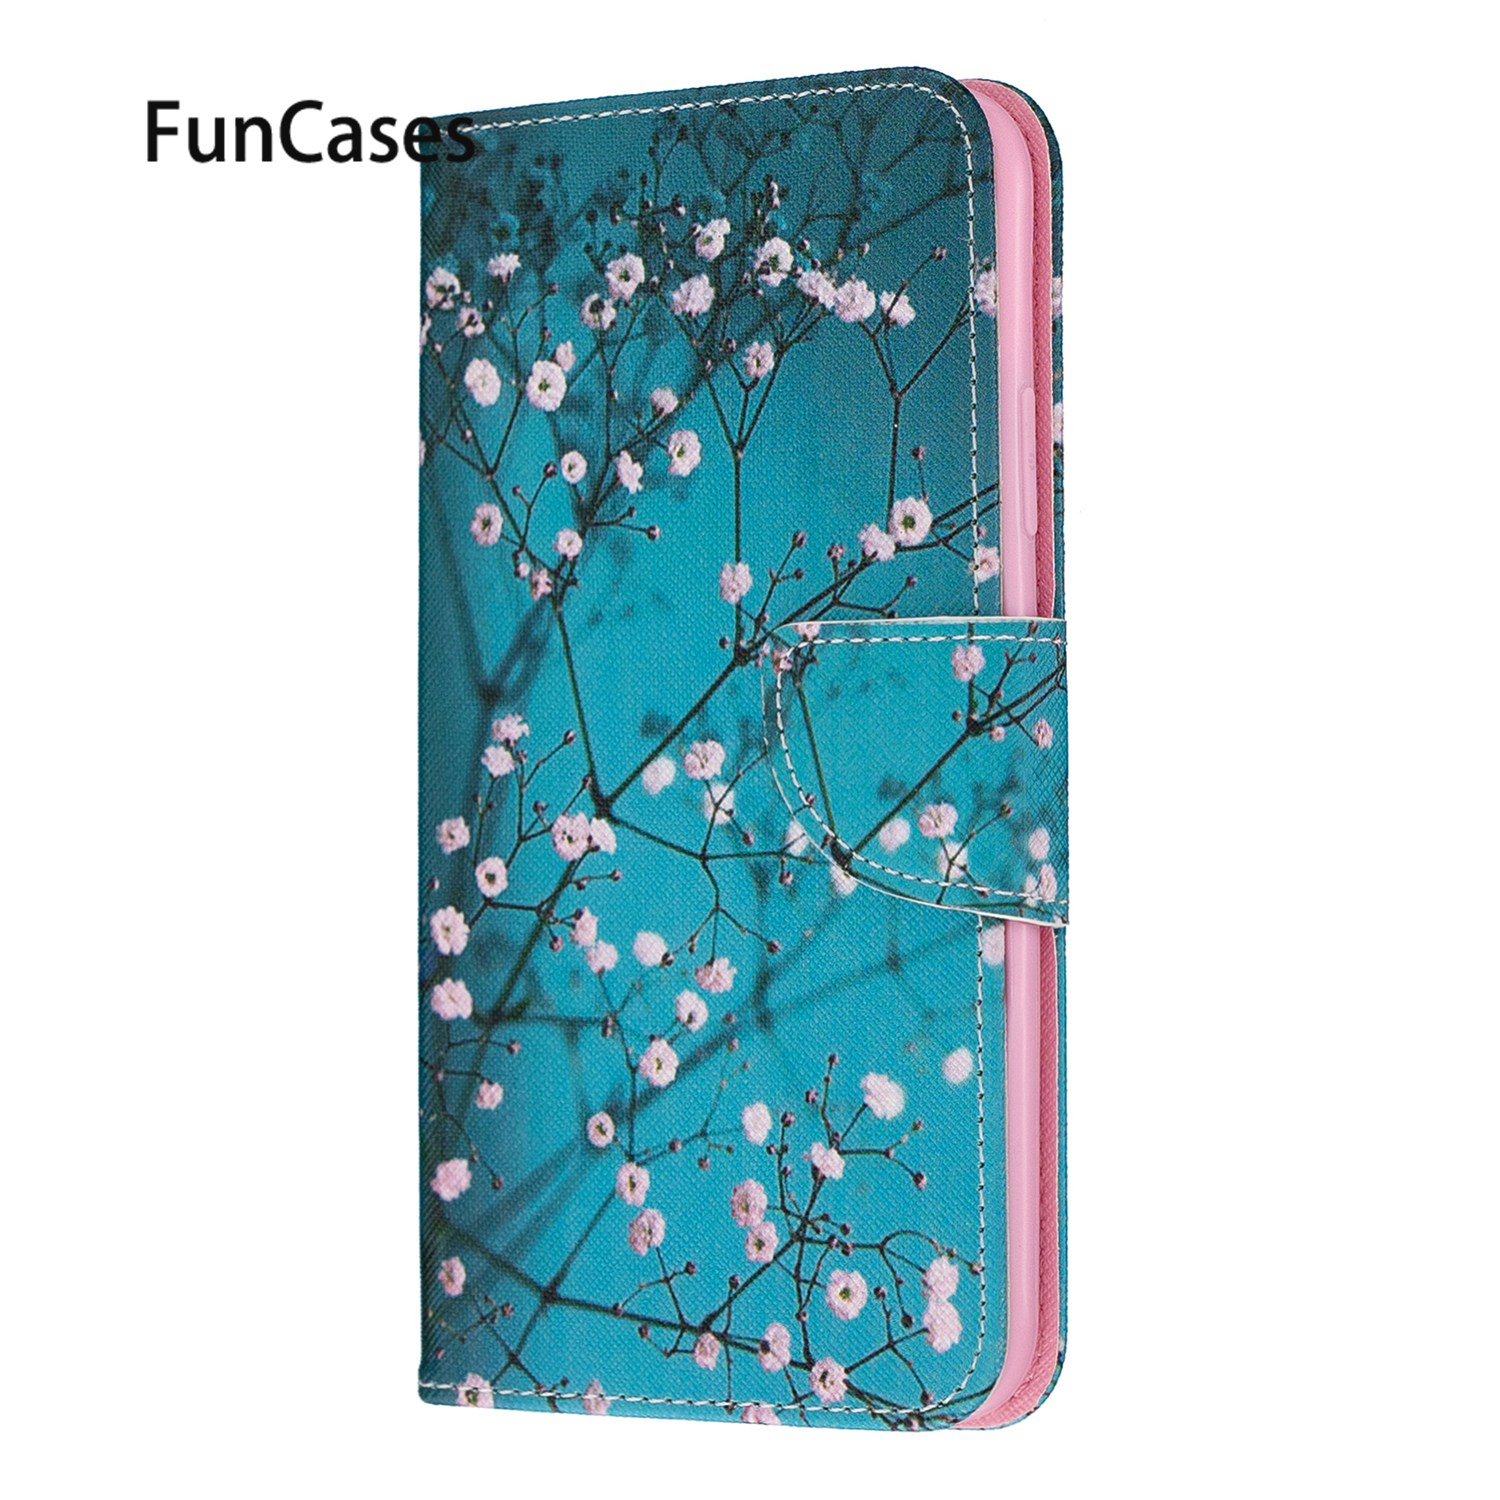 Cases For funda <font><b>Samsung</b></font> A40 Portable <font><b>Samsung</b></font> Galaxy carcaso A51 A71 A10E A10 A20E A10S A50 <font><b>A30</b></font> A70 A20S PU Leather Phone Bag image